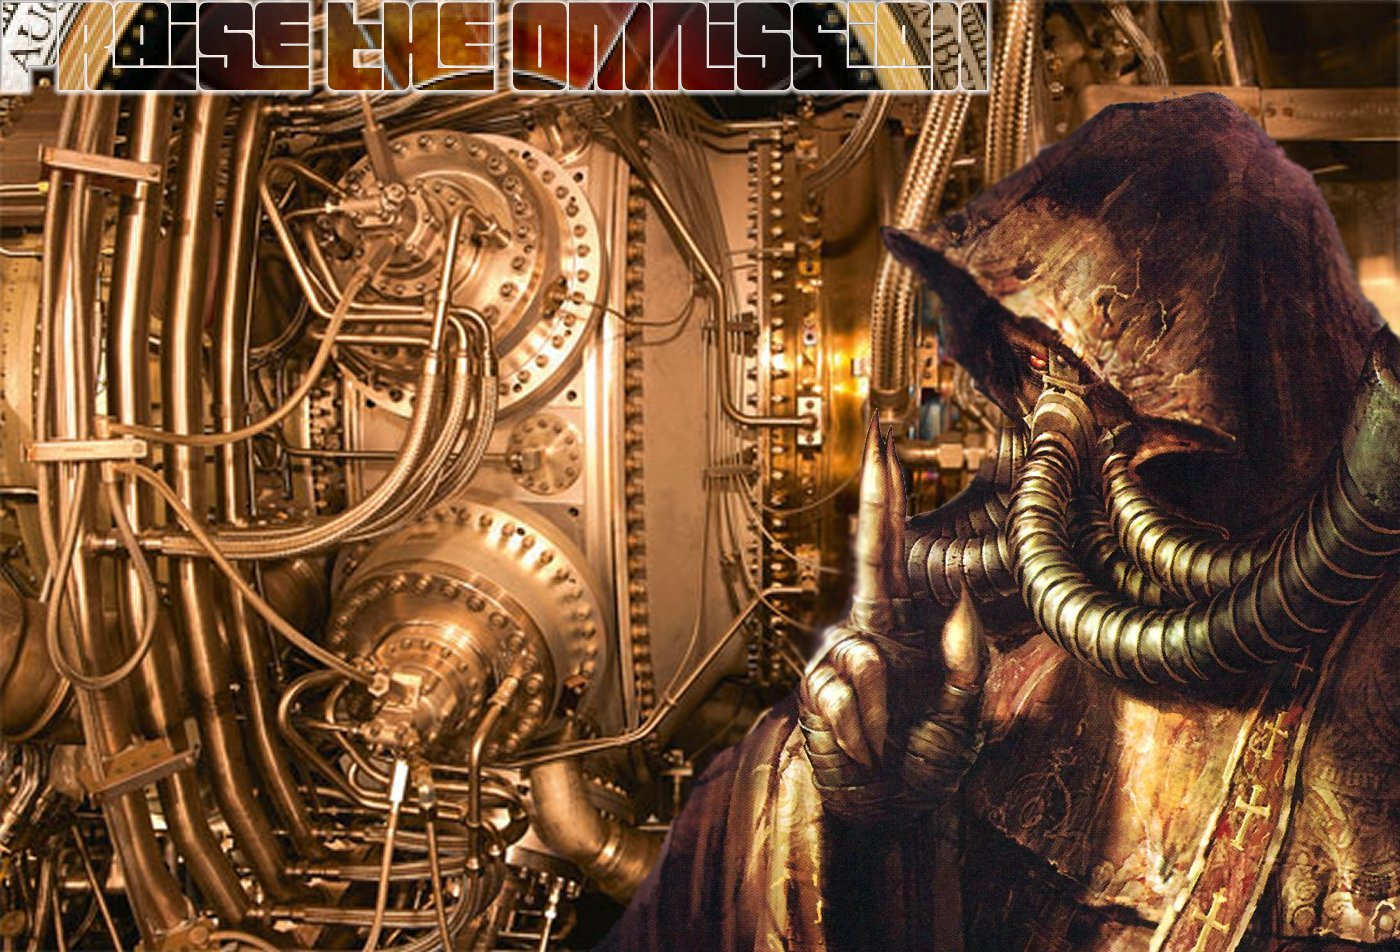 adeptus_mechanicus_3_by_amaranth7777-d6a1w25.jpg